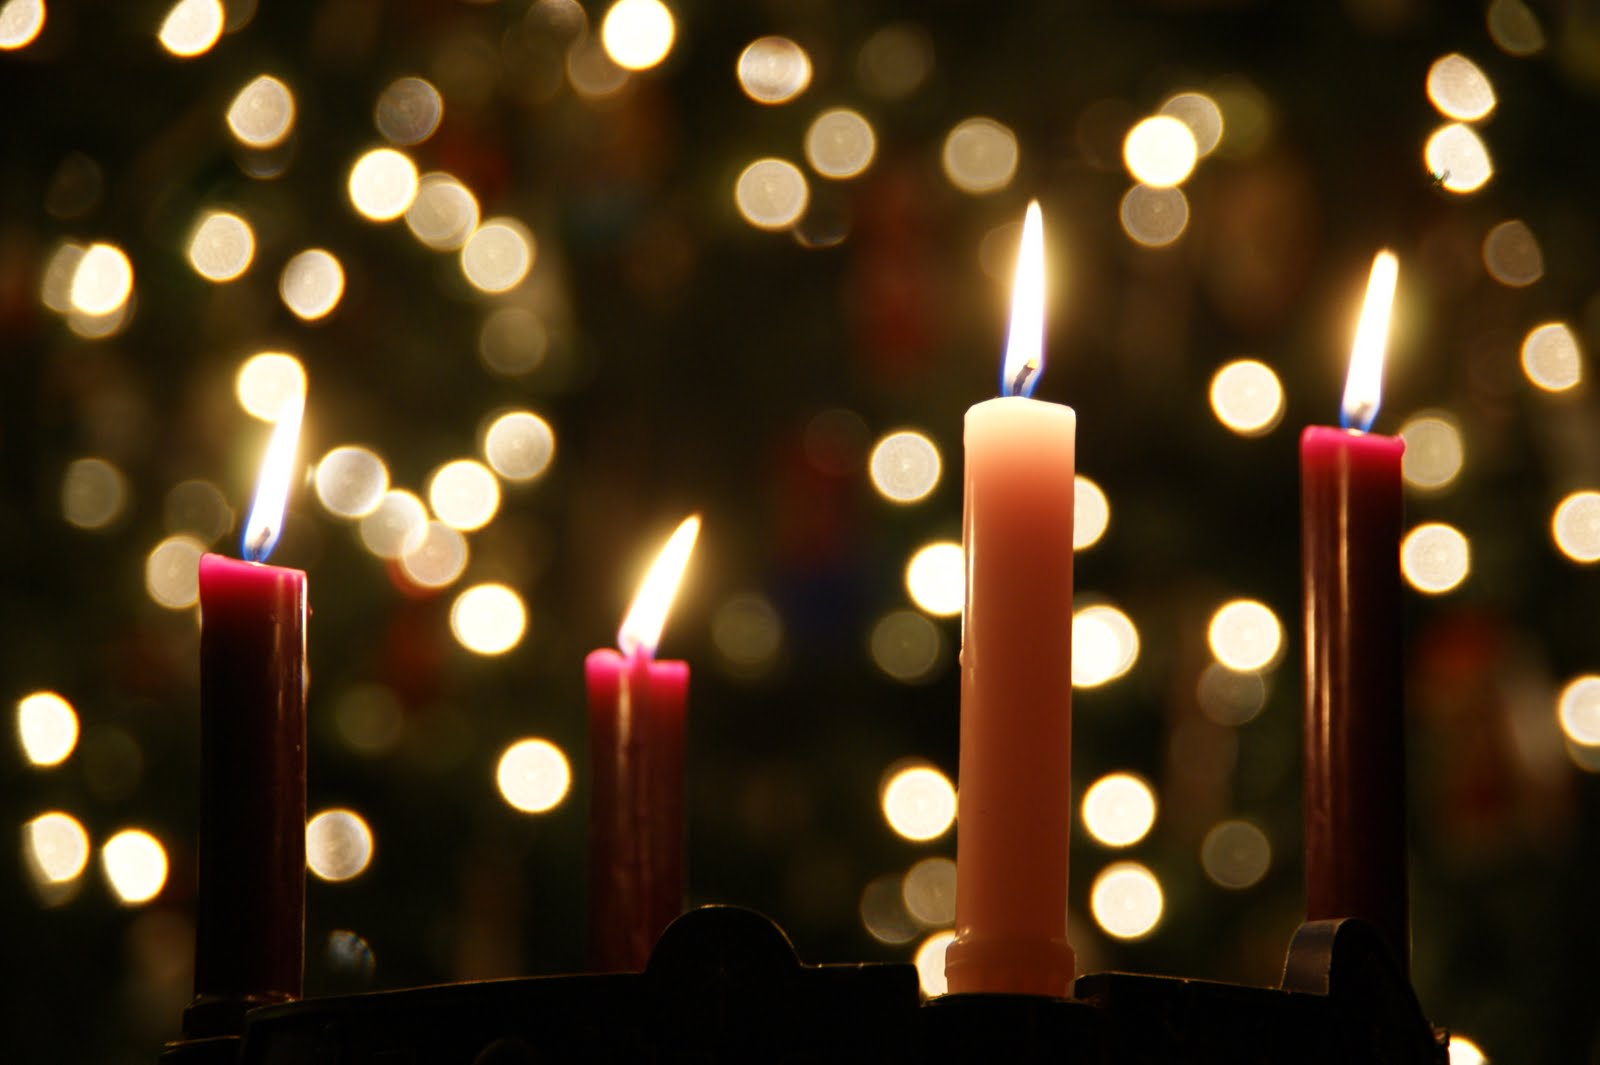 advent-candles | The Prodigal Thought